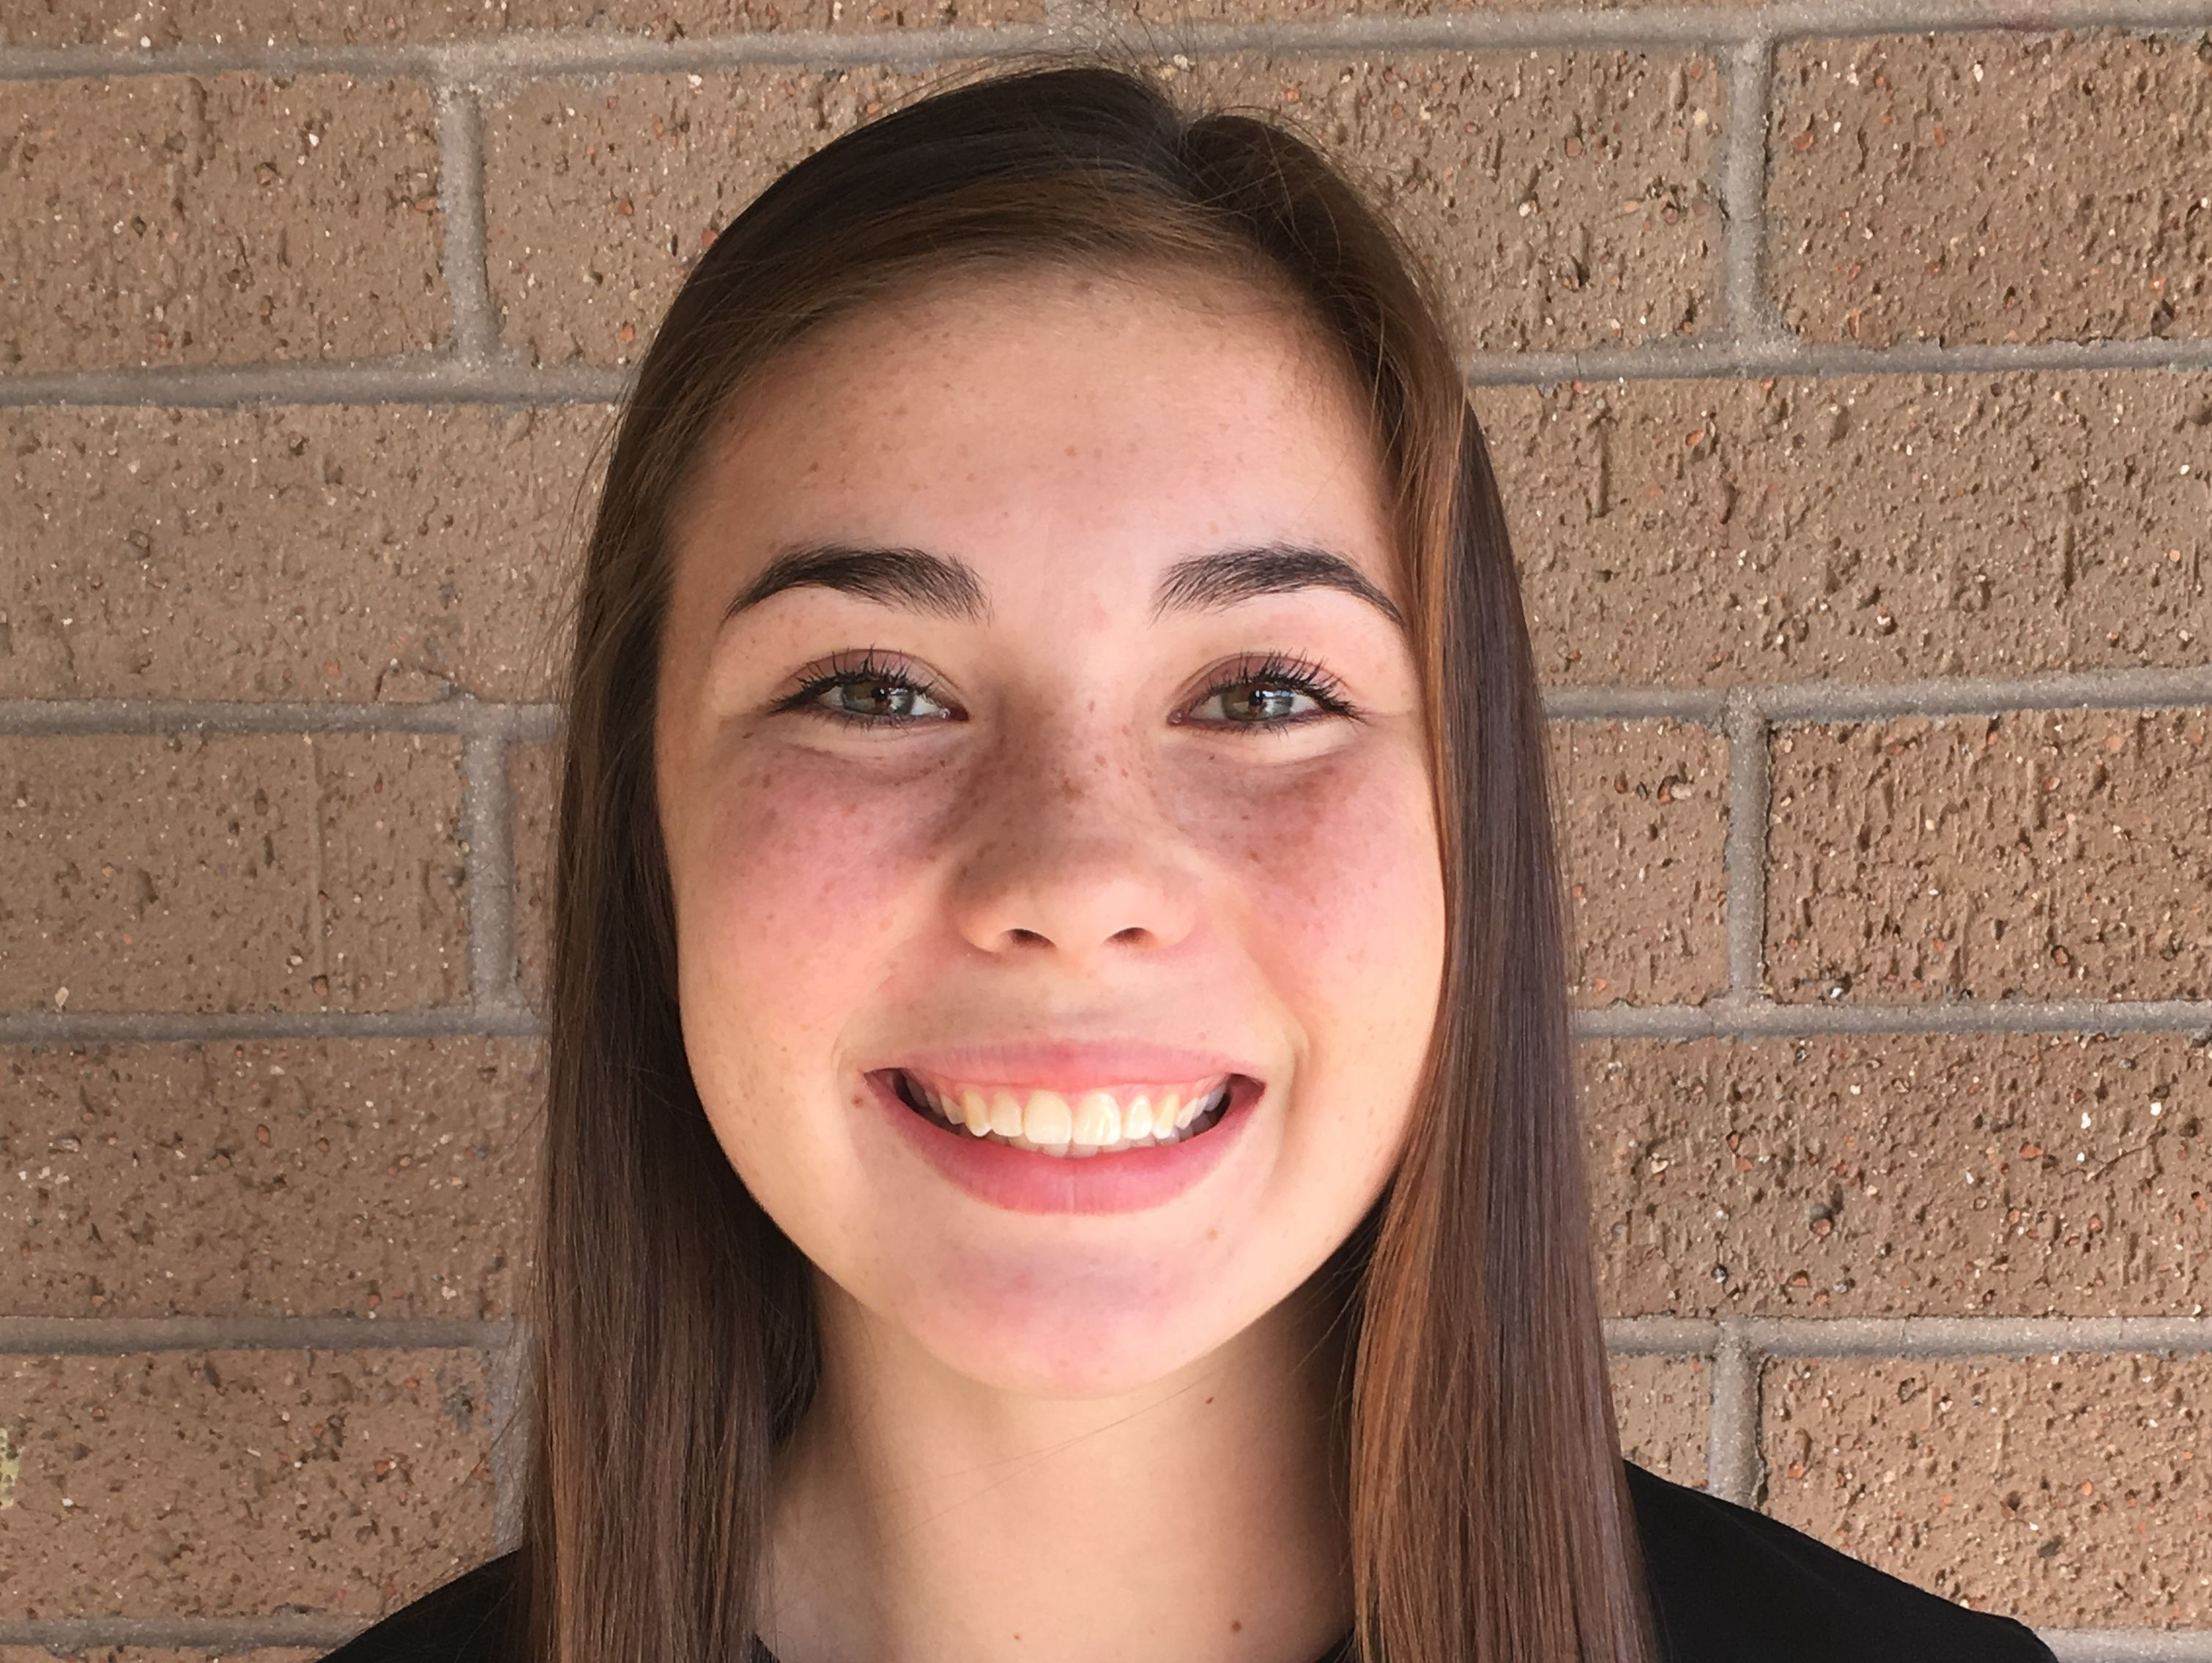 Shaylee Gonzales, from Gilbert Mesquite High School, is azcentral sports' Female Athlete of the Week for Nov. 26-Dec. 3.